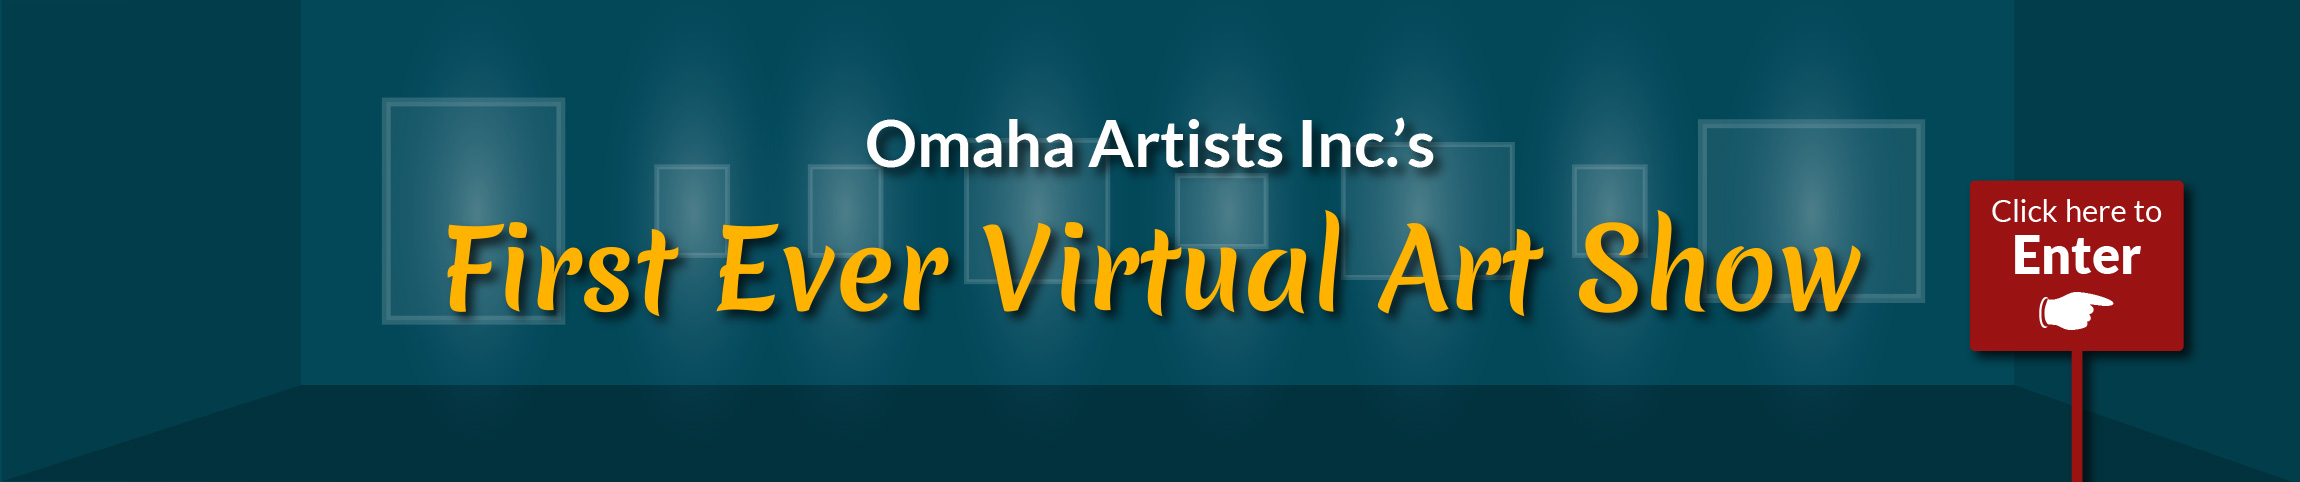 Click here to learn more about the First Ever Virtual Art Show